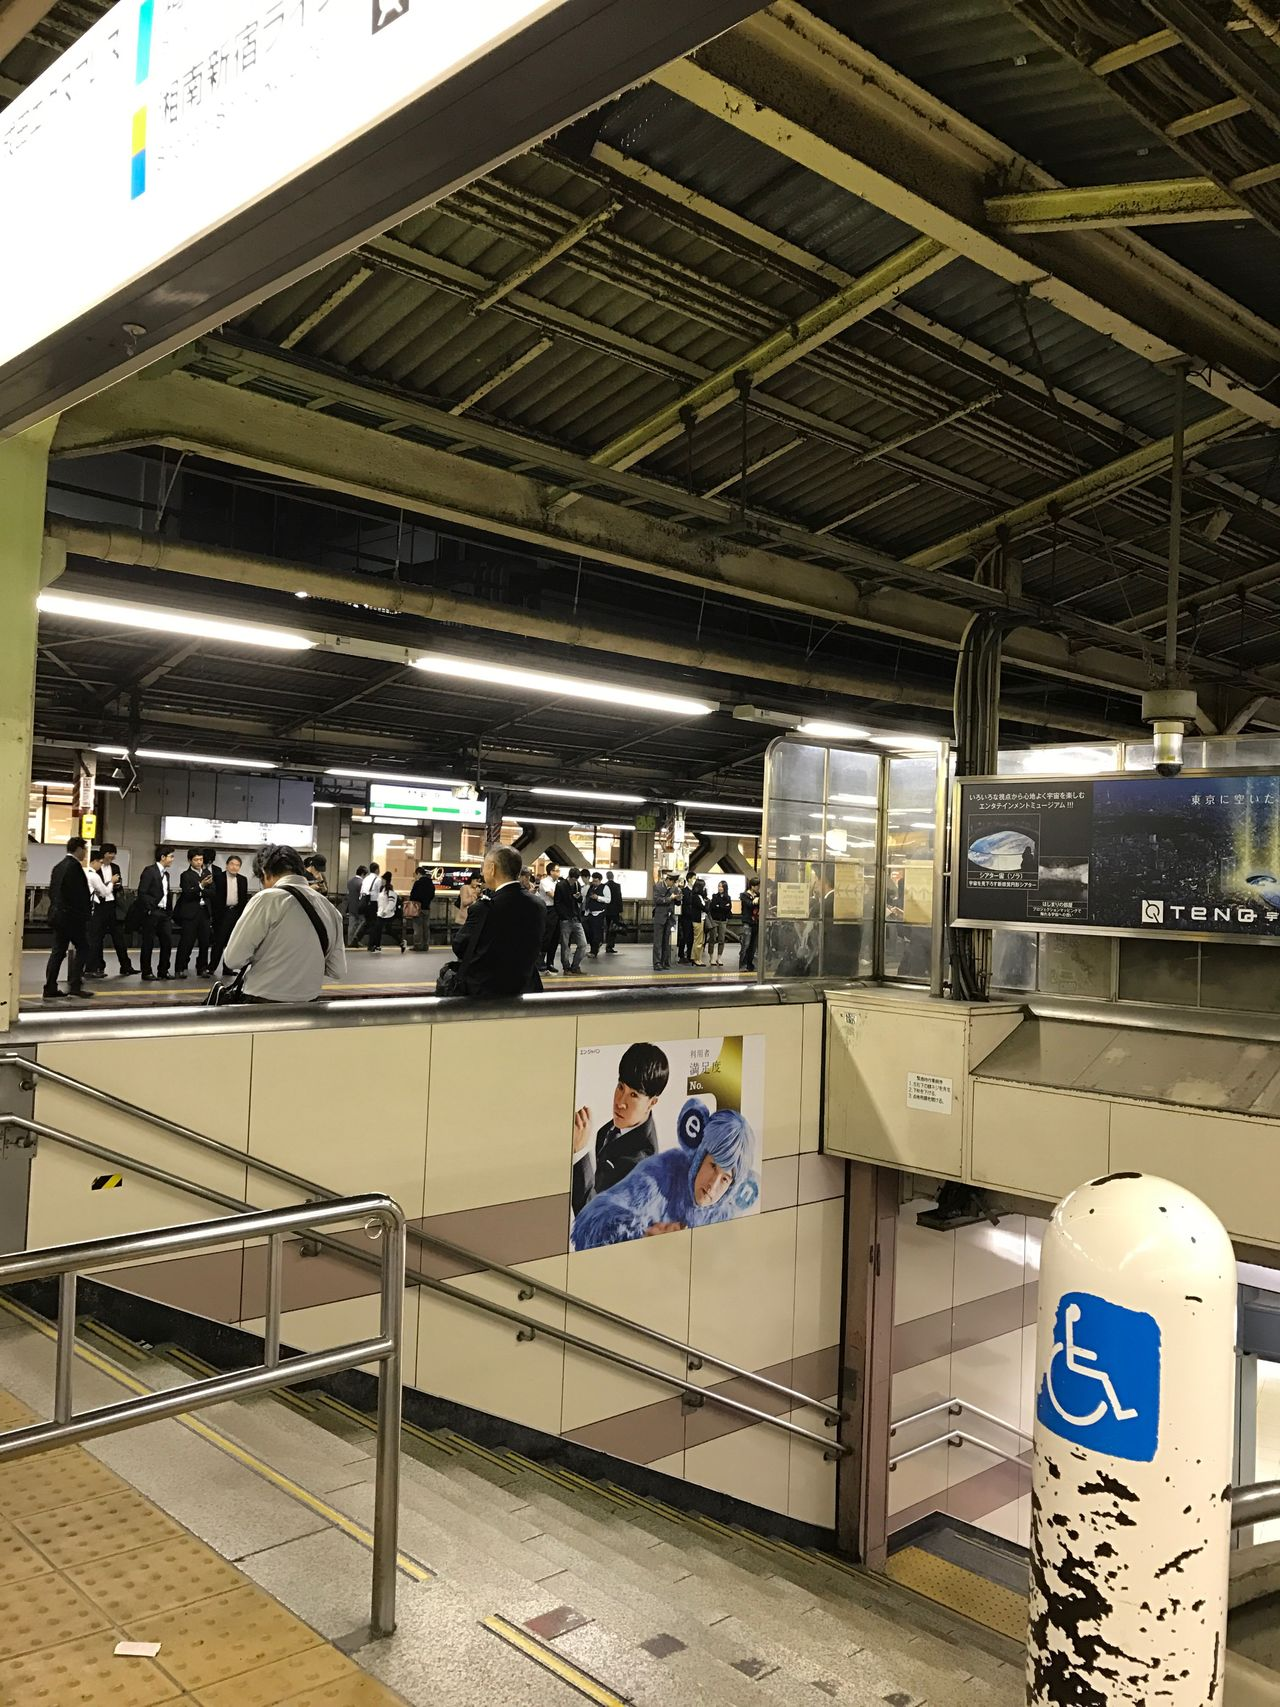 We were somehow able to get on the last train. Large Group Of People Indoors  Men Transportation Person Railroad Station Passenger Waiting Lifestyles Sitting Motion Convenience Retail  Anticipation Roof Ceiling Relaxation Rush Hour Transportation Building - Type Of Building Flooring Last Train Shinjuku